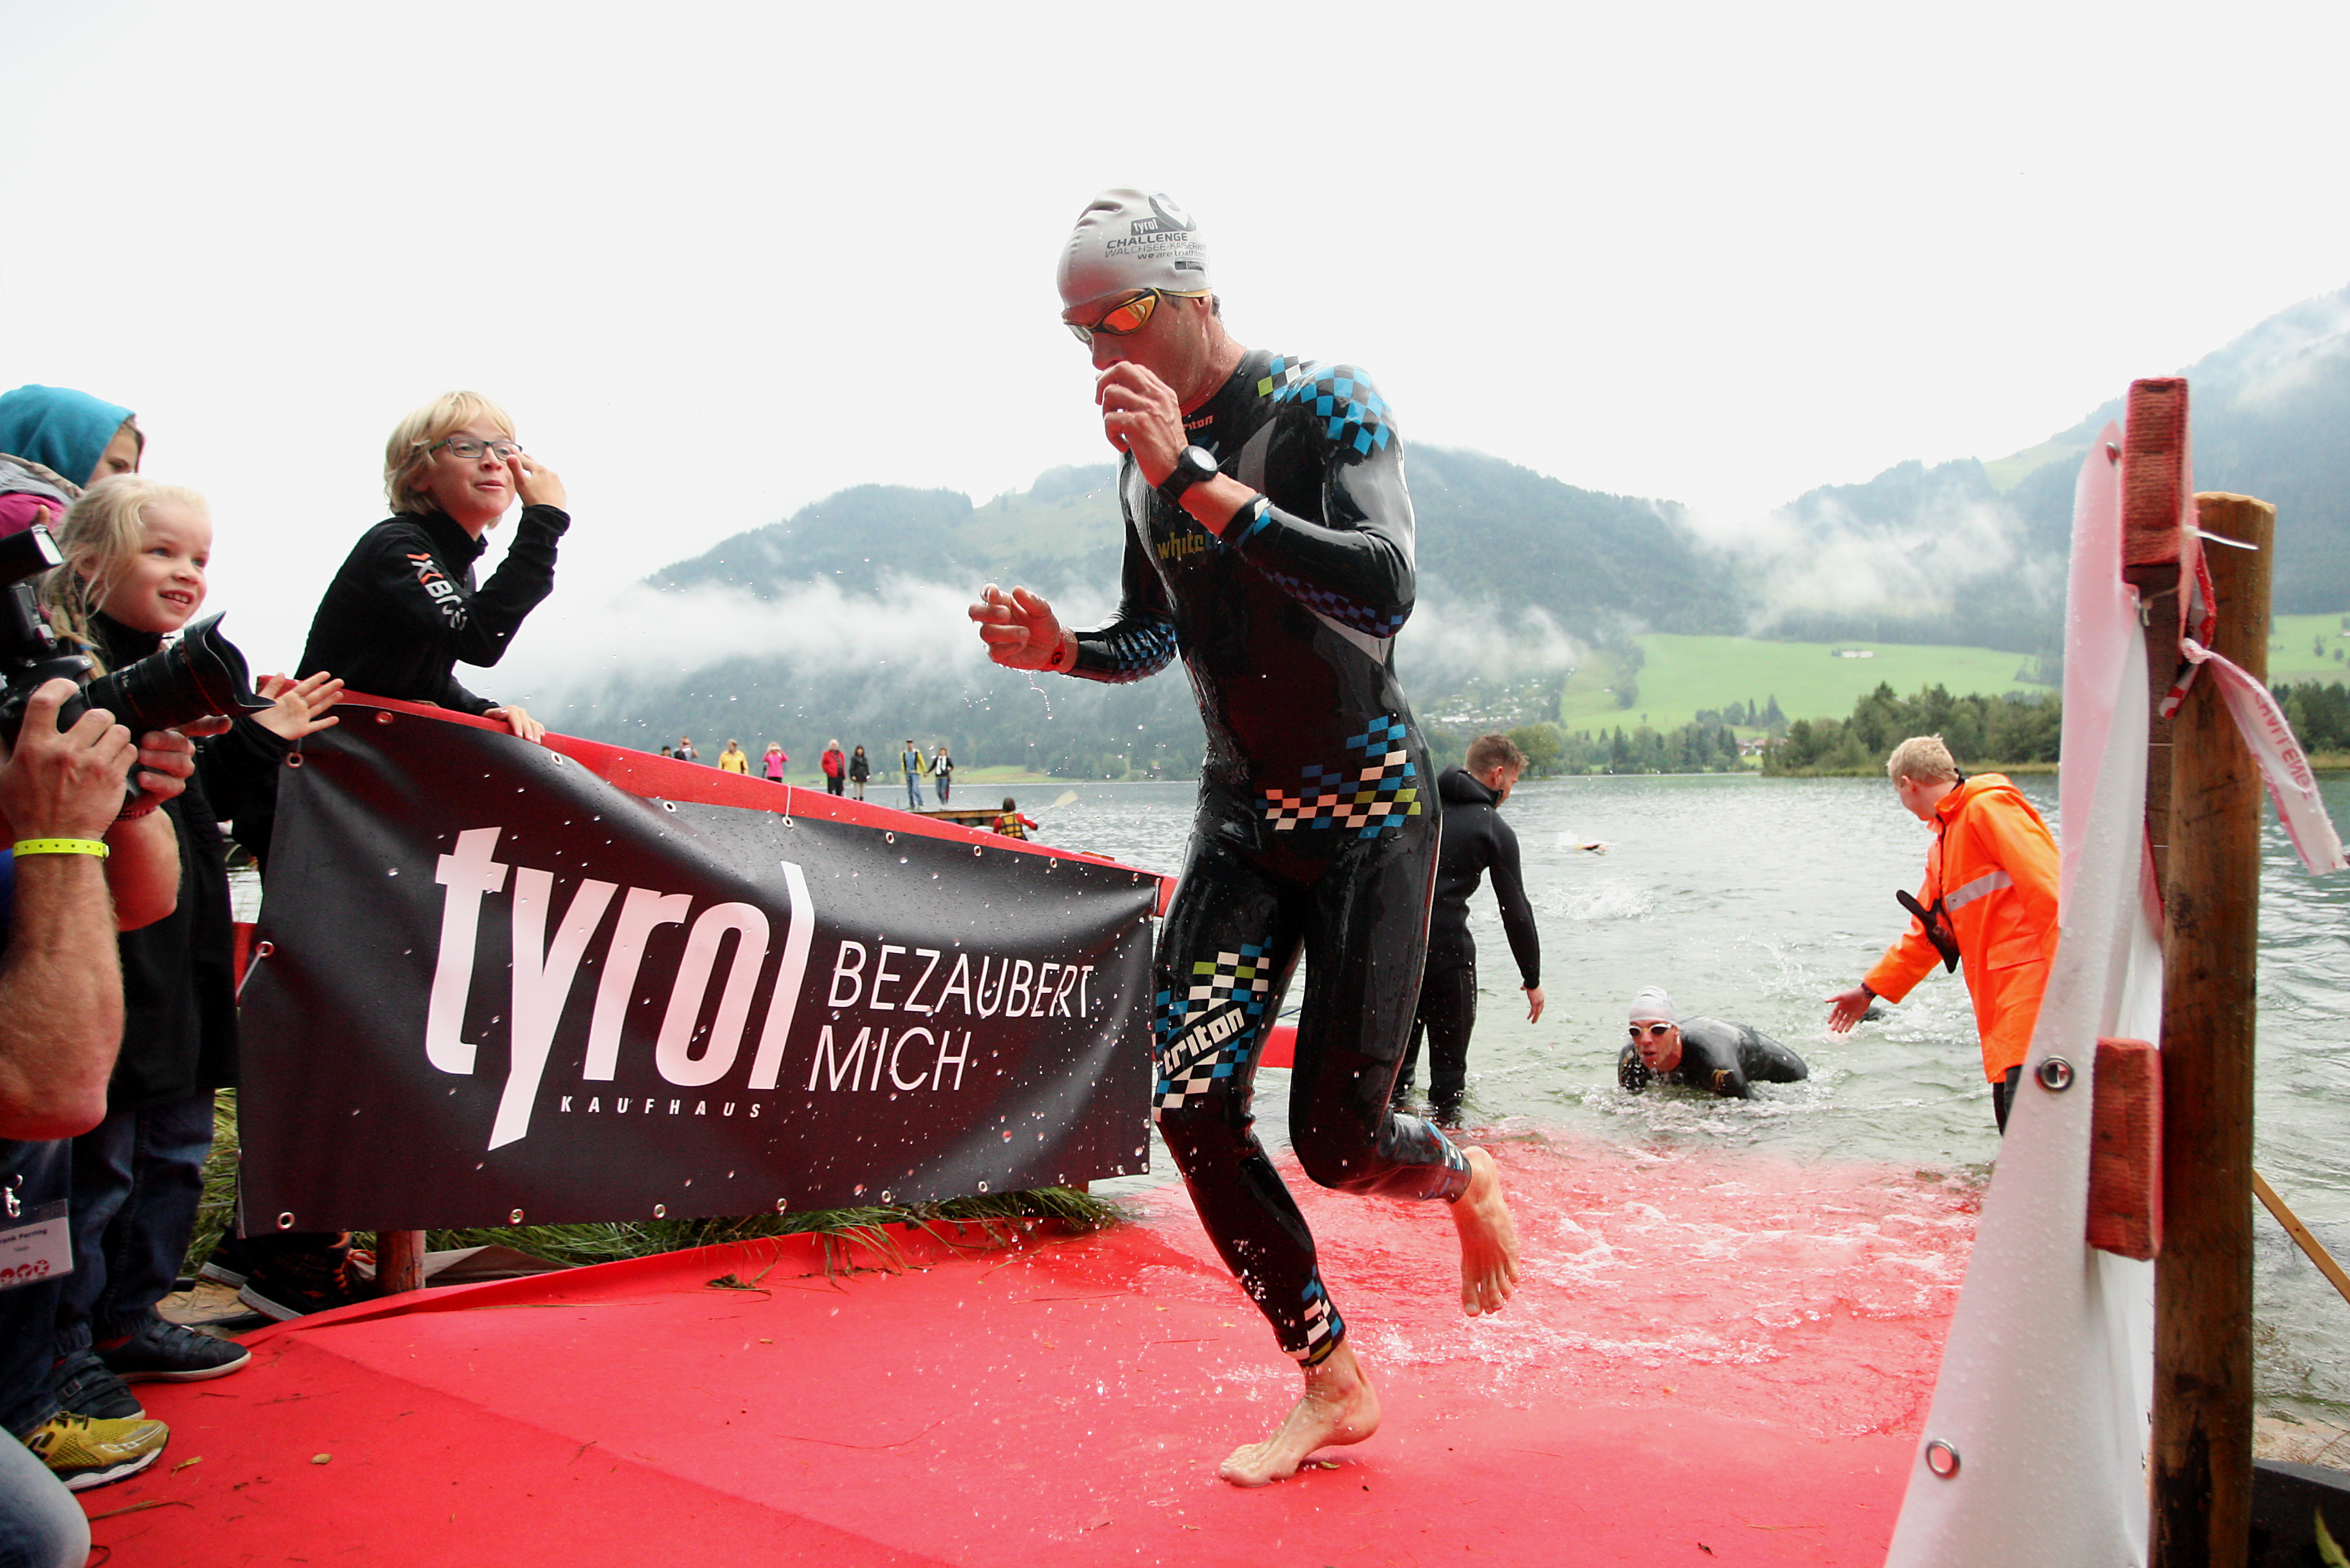 A competitor exits the water during the Challenge Triathlon Walchsee-Kaiserwinkl on September 1, 2013 in Walchsee, Austria. (Photo by Stephen Pond/Getty Images for Challenge Triathlon)